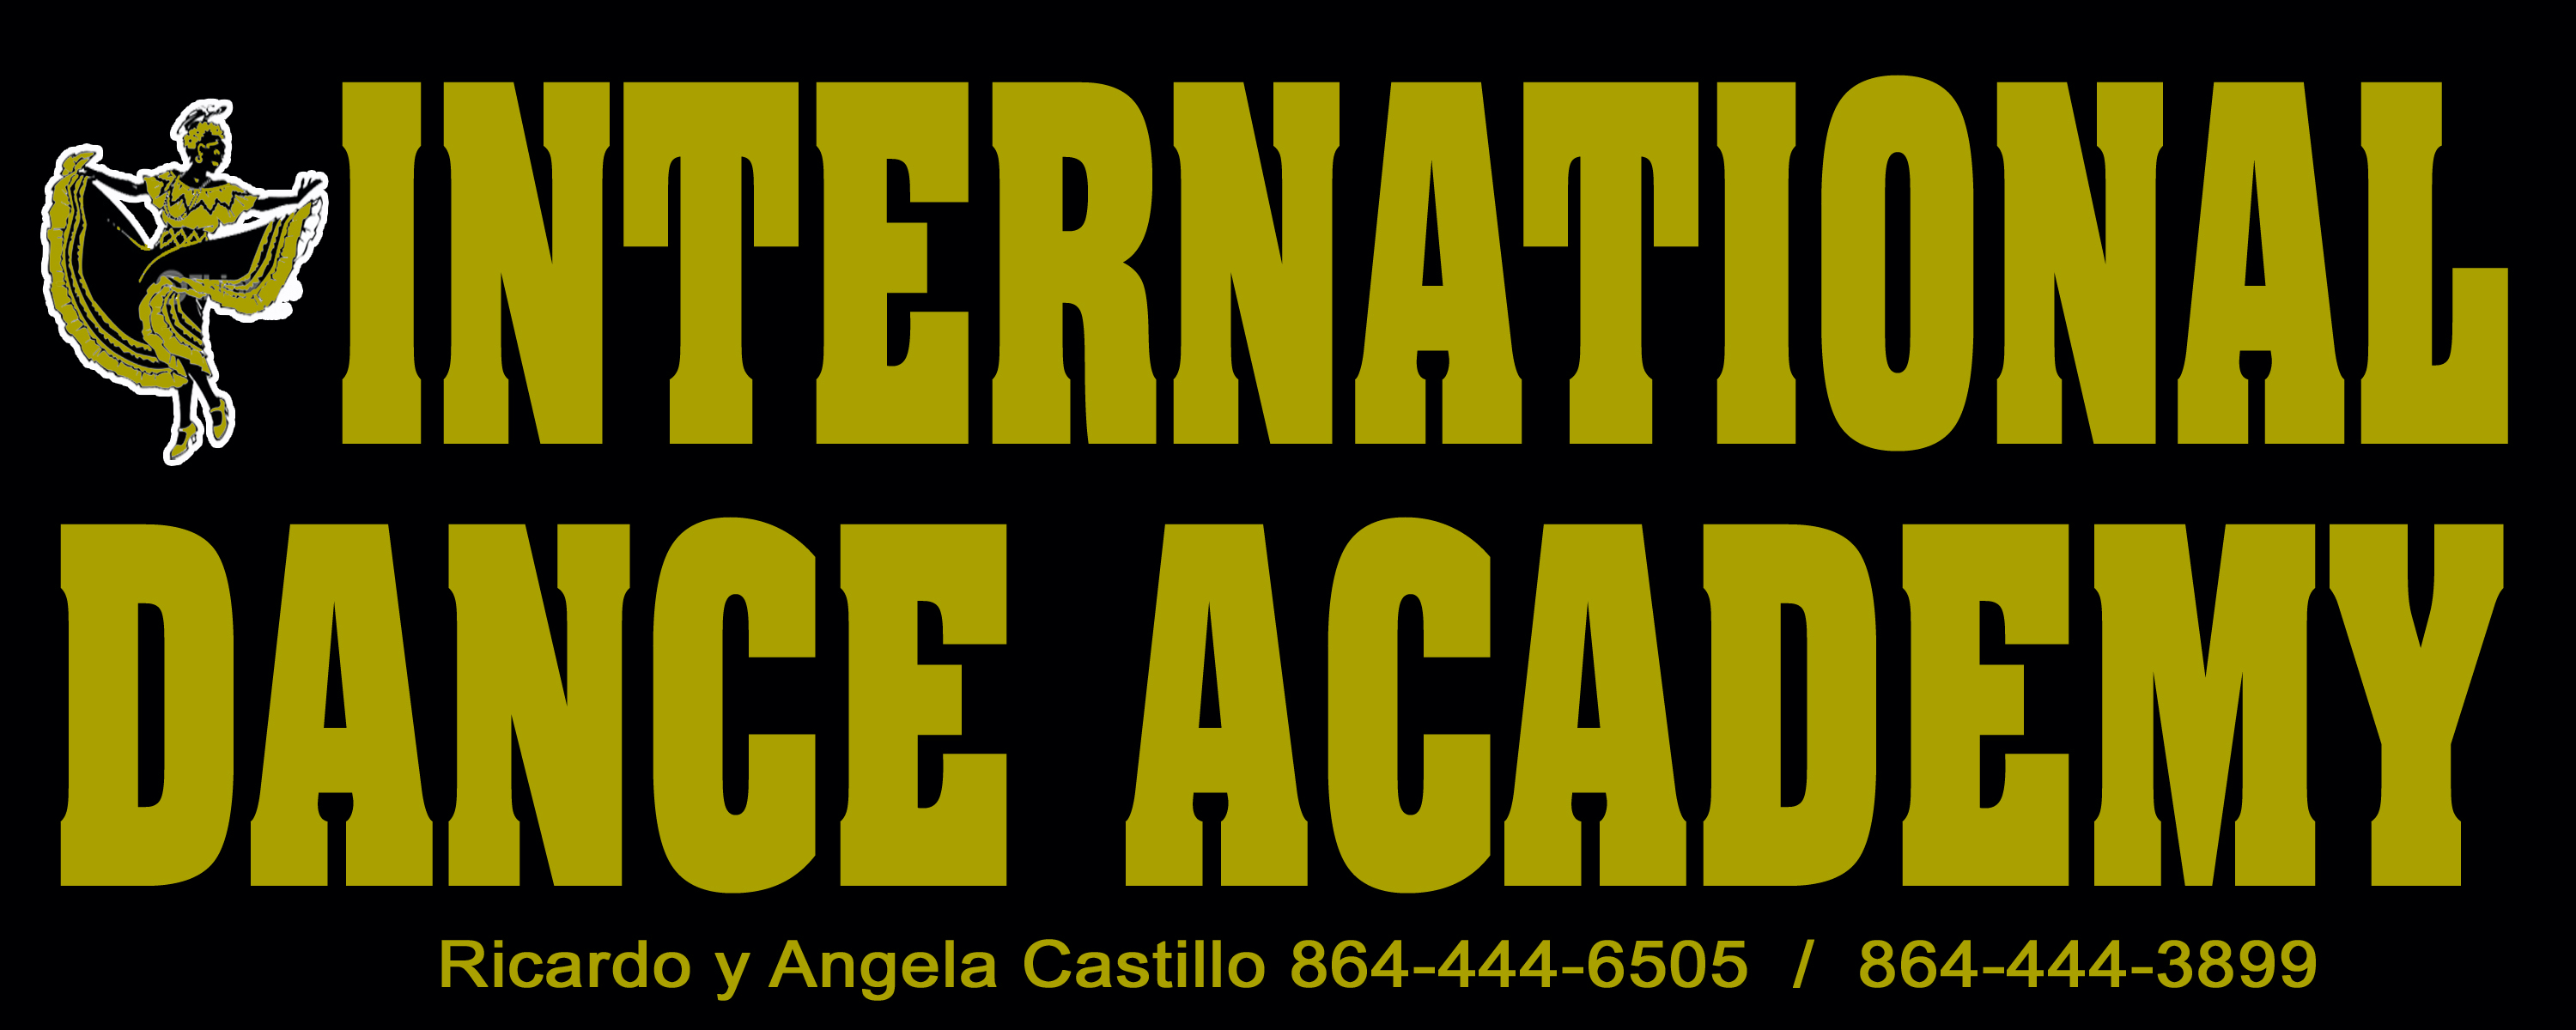 Partner_International Dance Academy_Logo